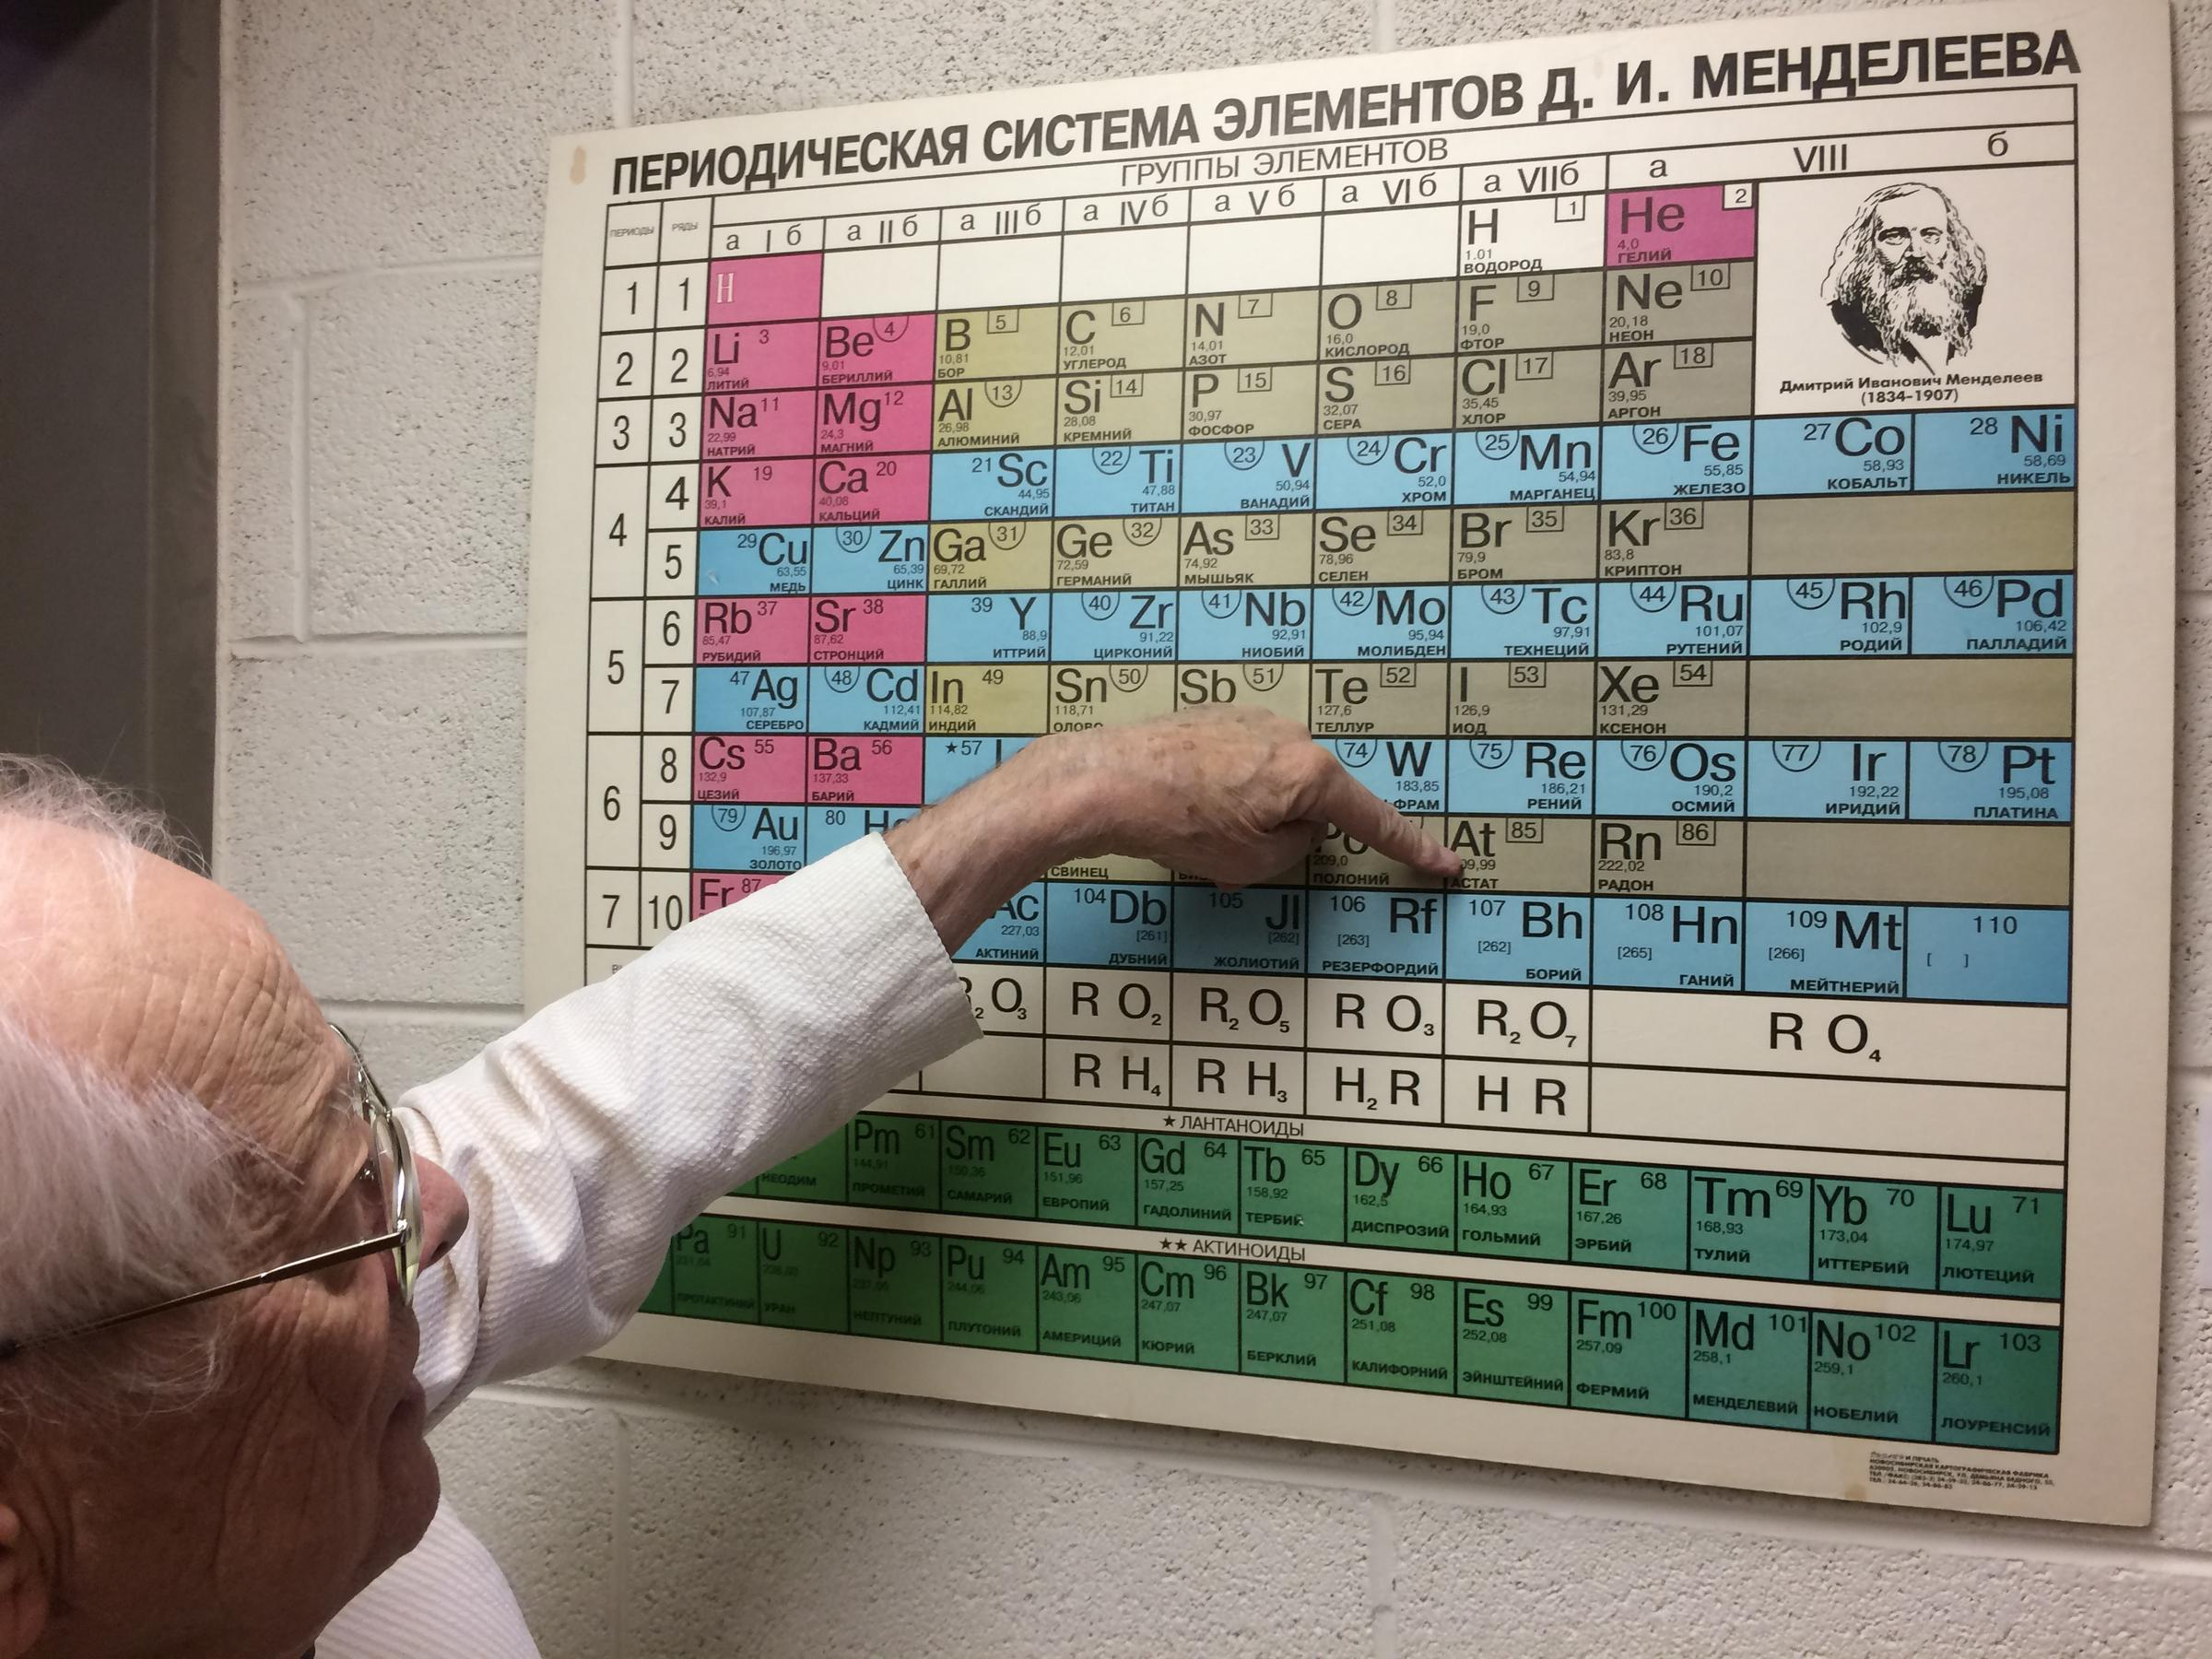 The method tennessine gets a seat at the periodic table wuot university of tennessee chemist george schweitzer points to the spot on the periodic table now occupied by tennessine the name was announced on june 8 urtaz Images